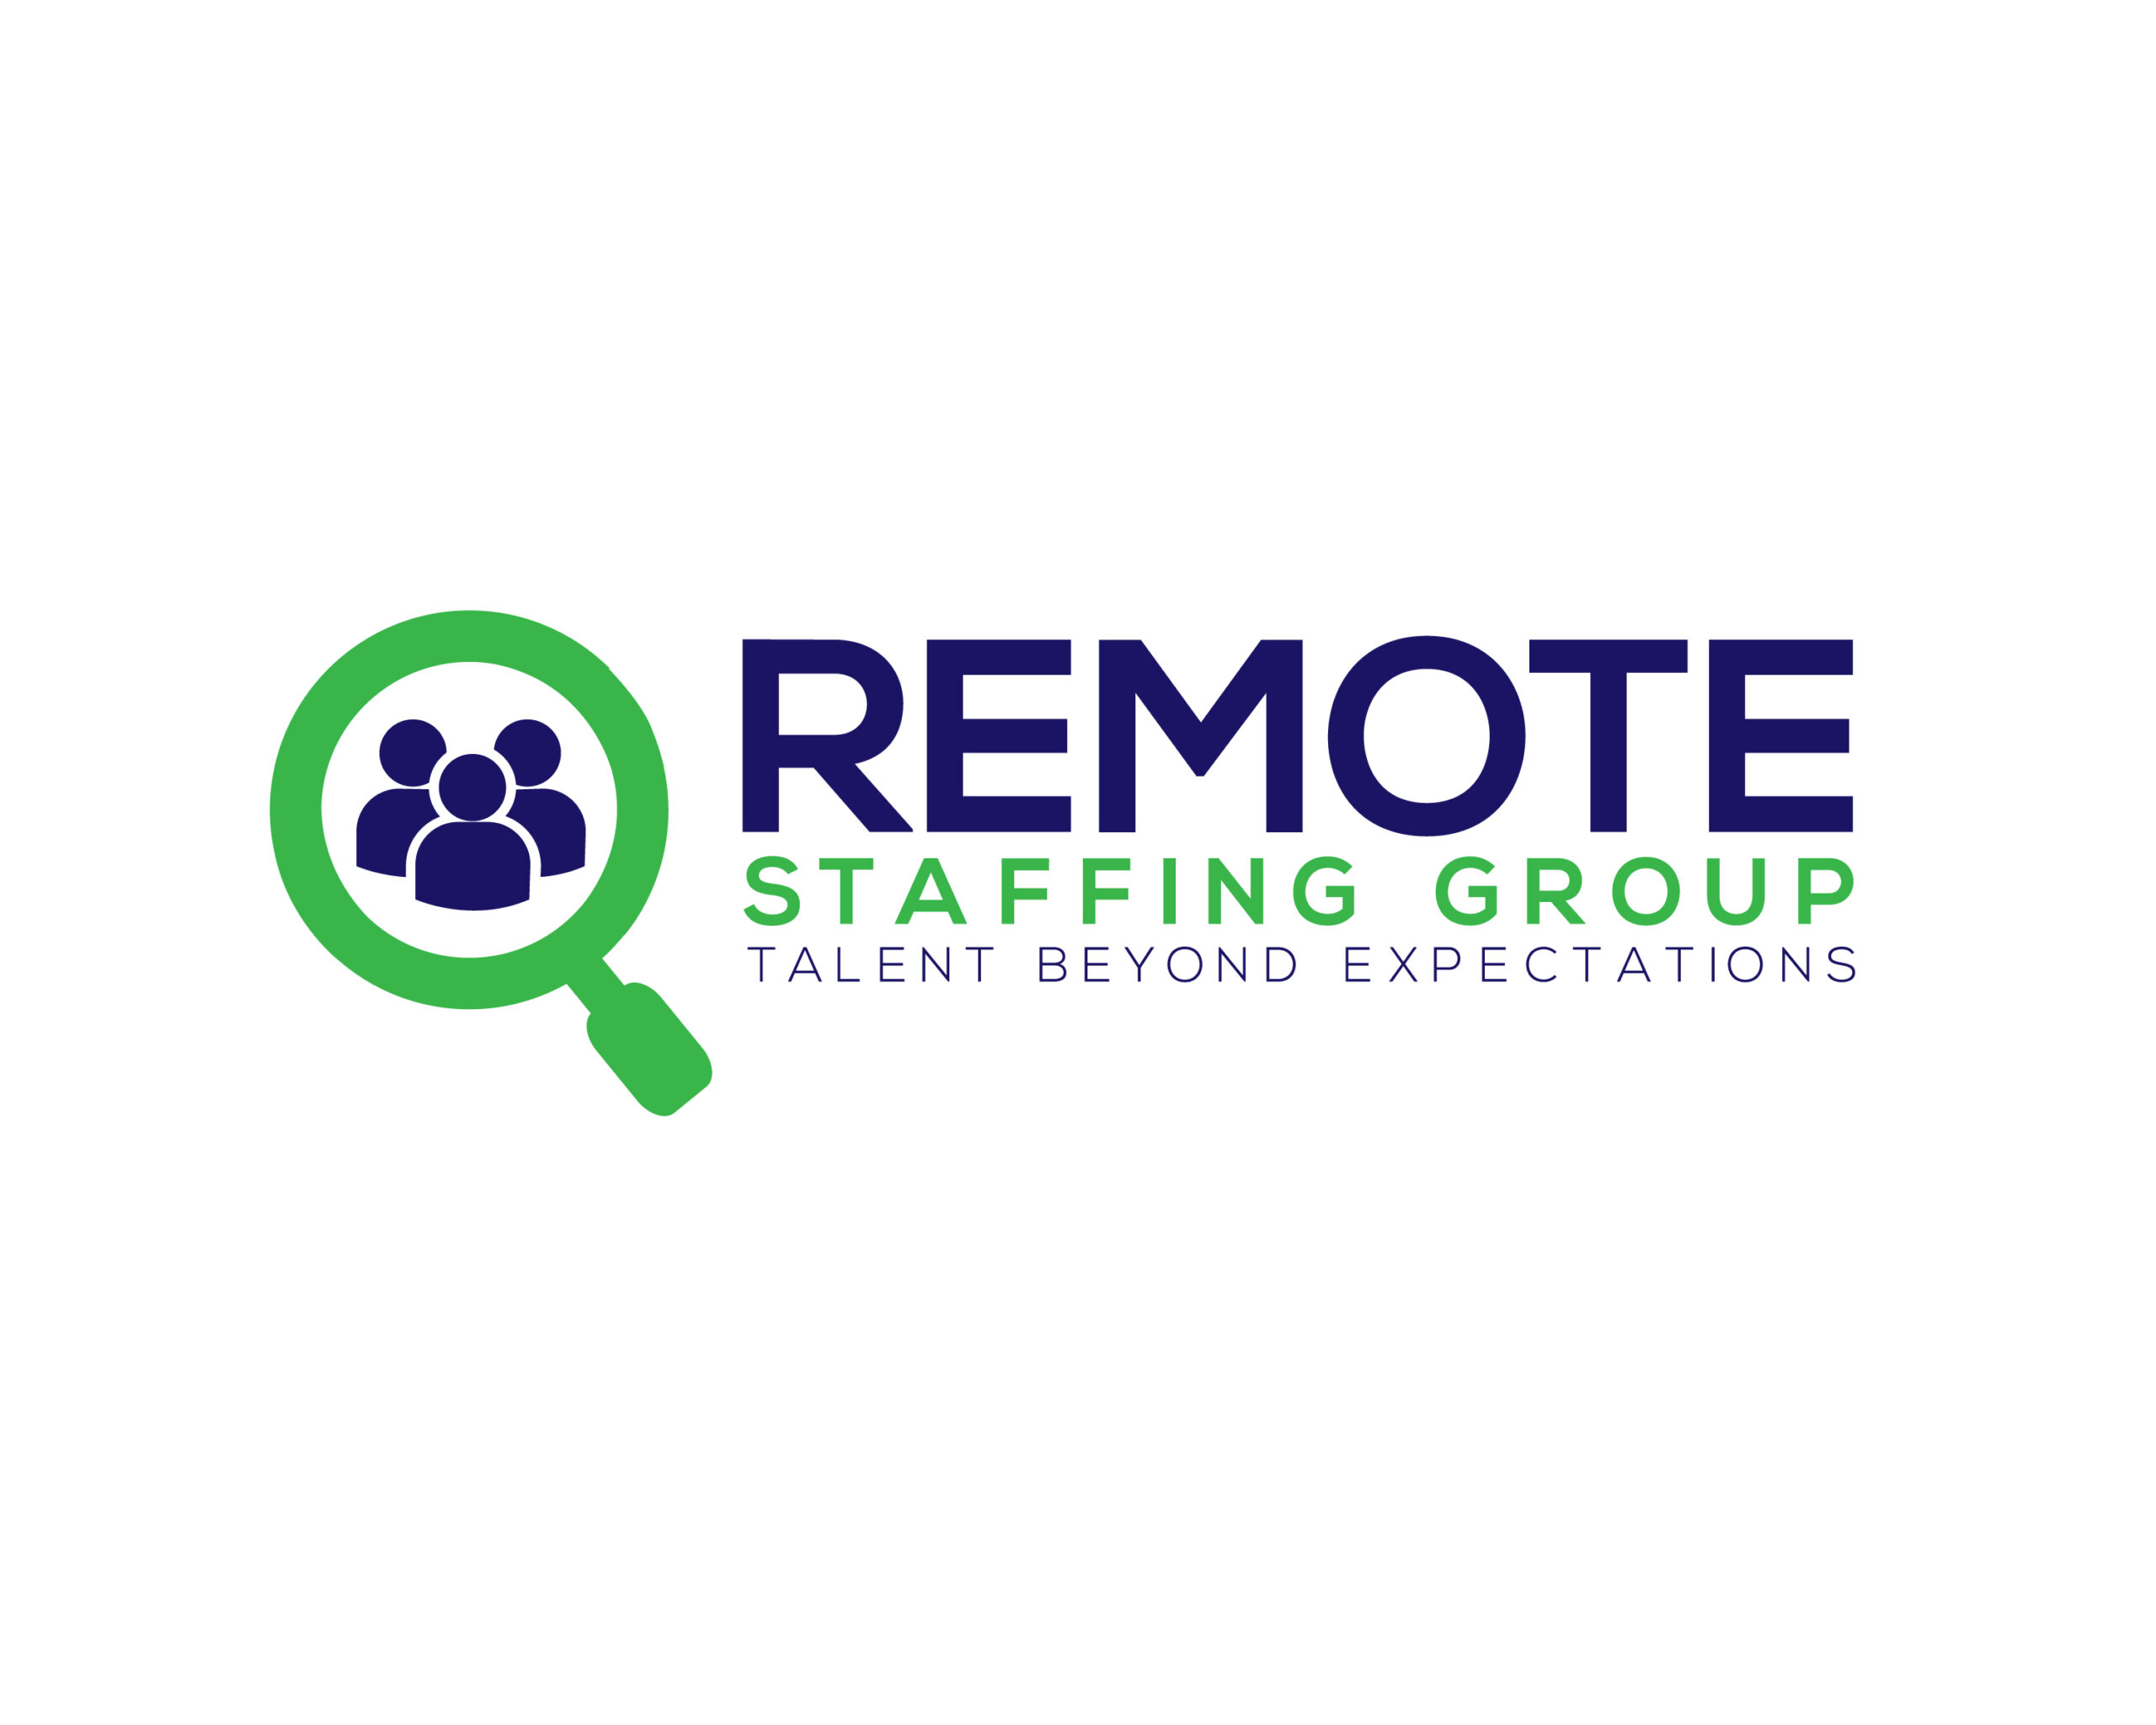 Remote Staffing Group